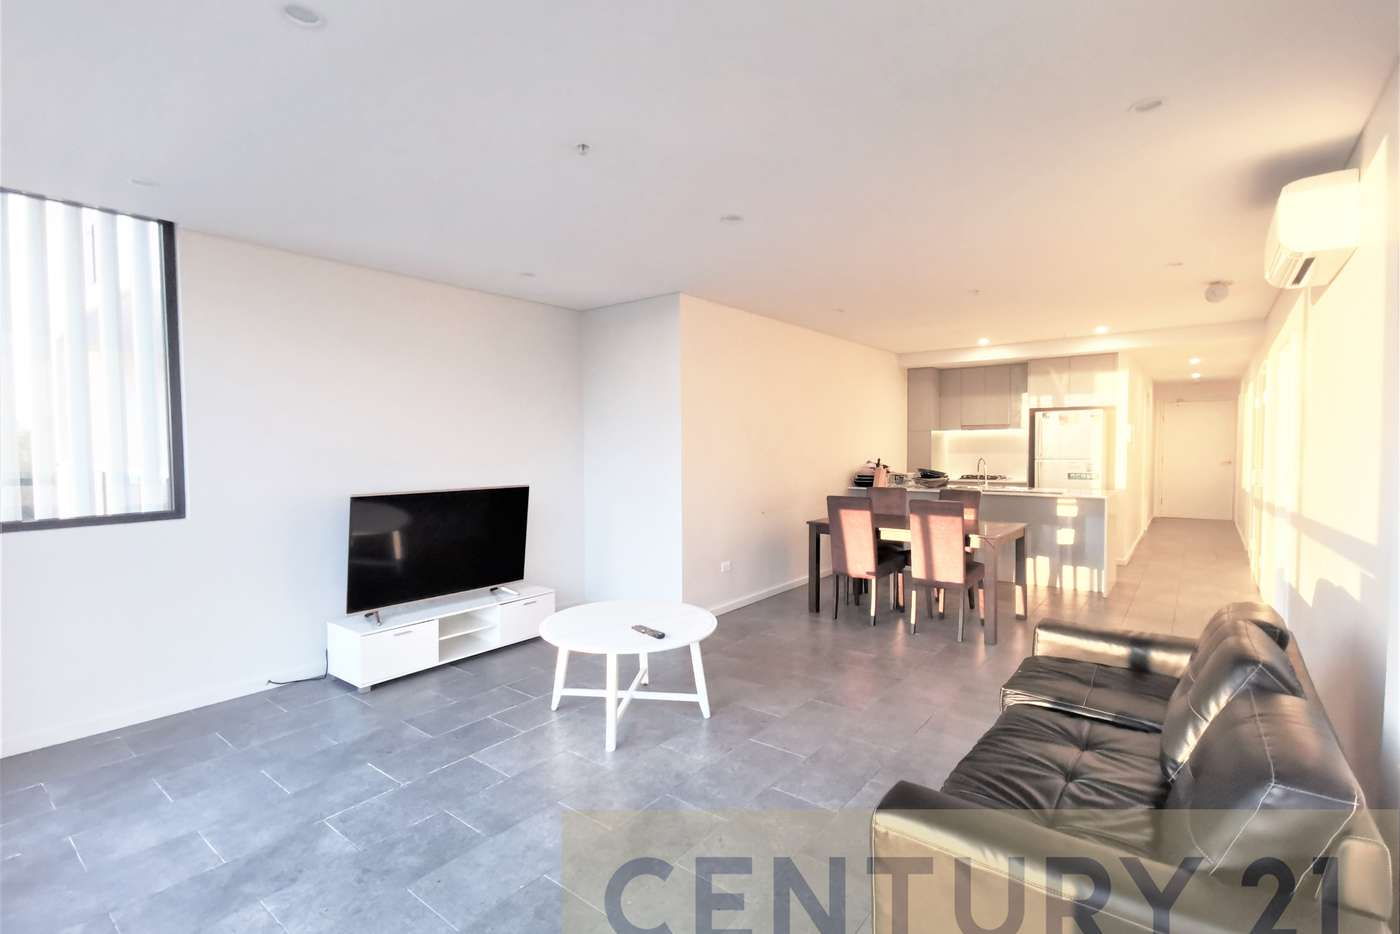 Main view of Homely apartment listing, 403/581 Gardeners Road, Mascot NSW 2020